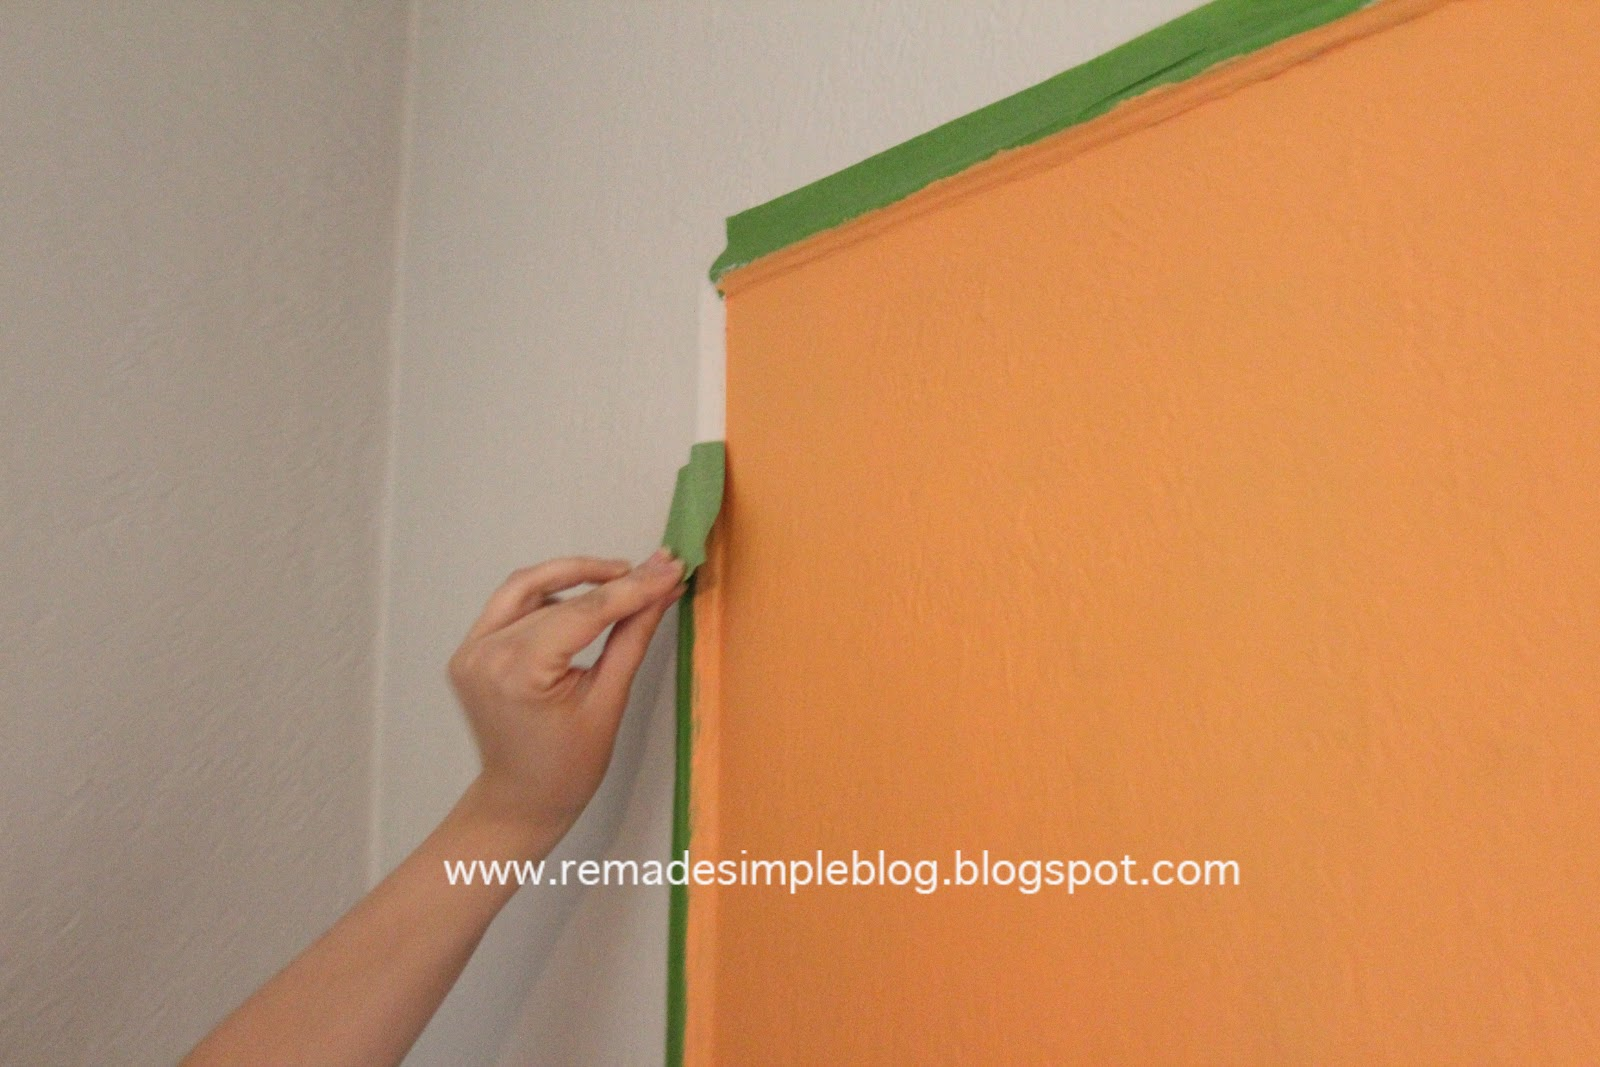 Remadesimple how to paint a straight line on a textured wall for Painting lines on walls